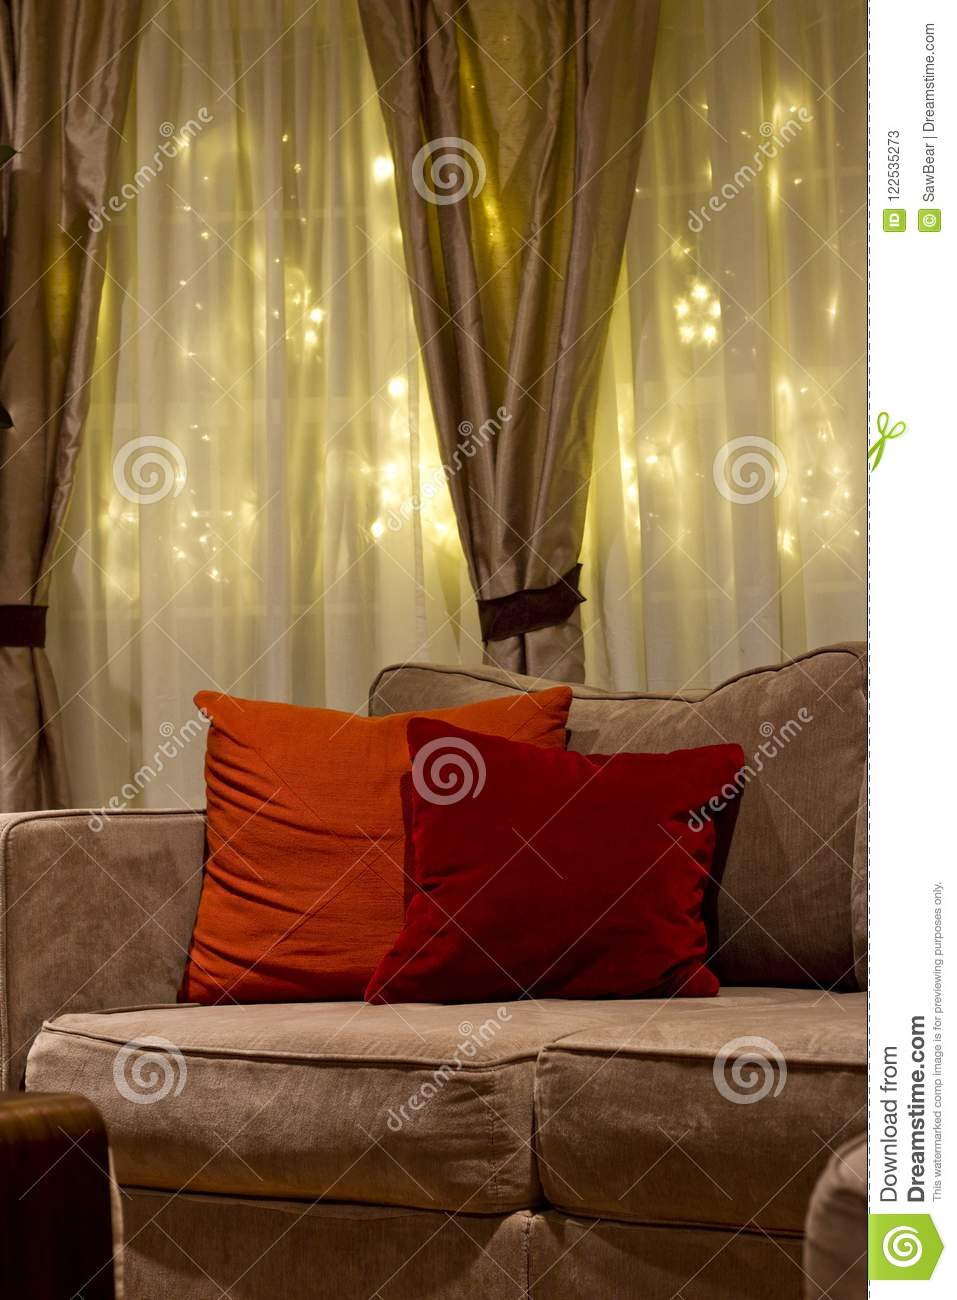 throw pillows for living room couch paint color rooms cozy nighttime stock image of indoors a with orange and red against curtains lights